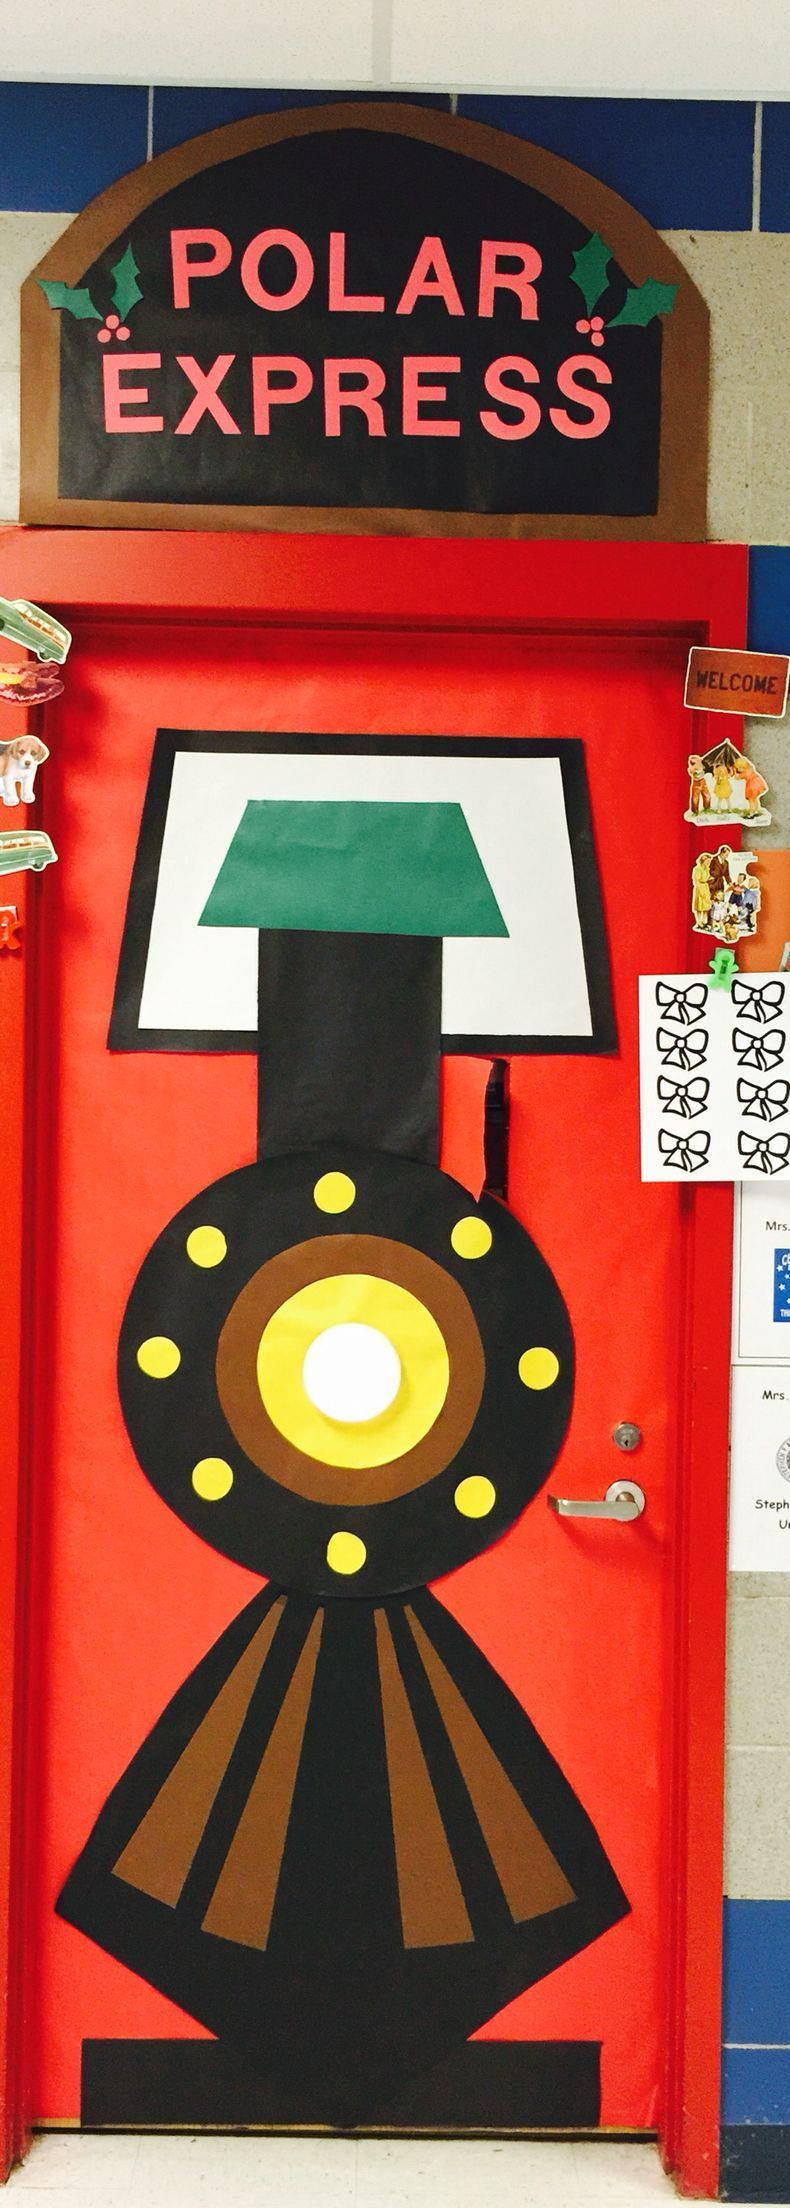 Polar Express Christmas Door Bulletin Boards Christmas Door #christmasdoordecorationsforwork Polar Express Christmas Door Bulletin Boards Christmas Door #christmasdoordecorationsforschool